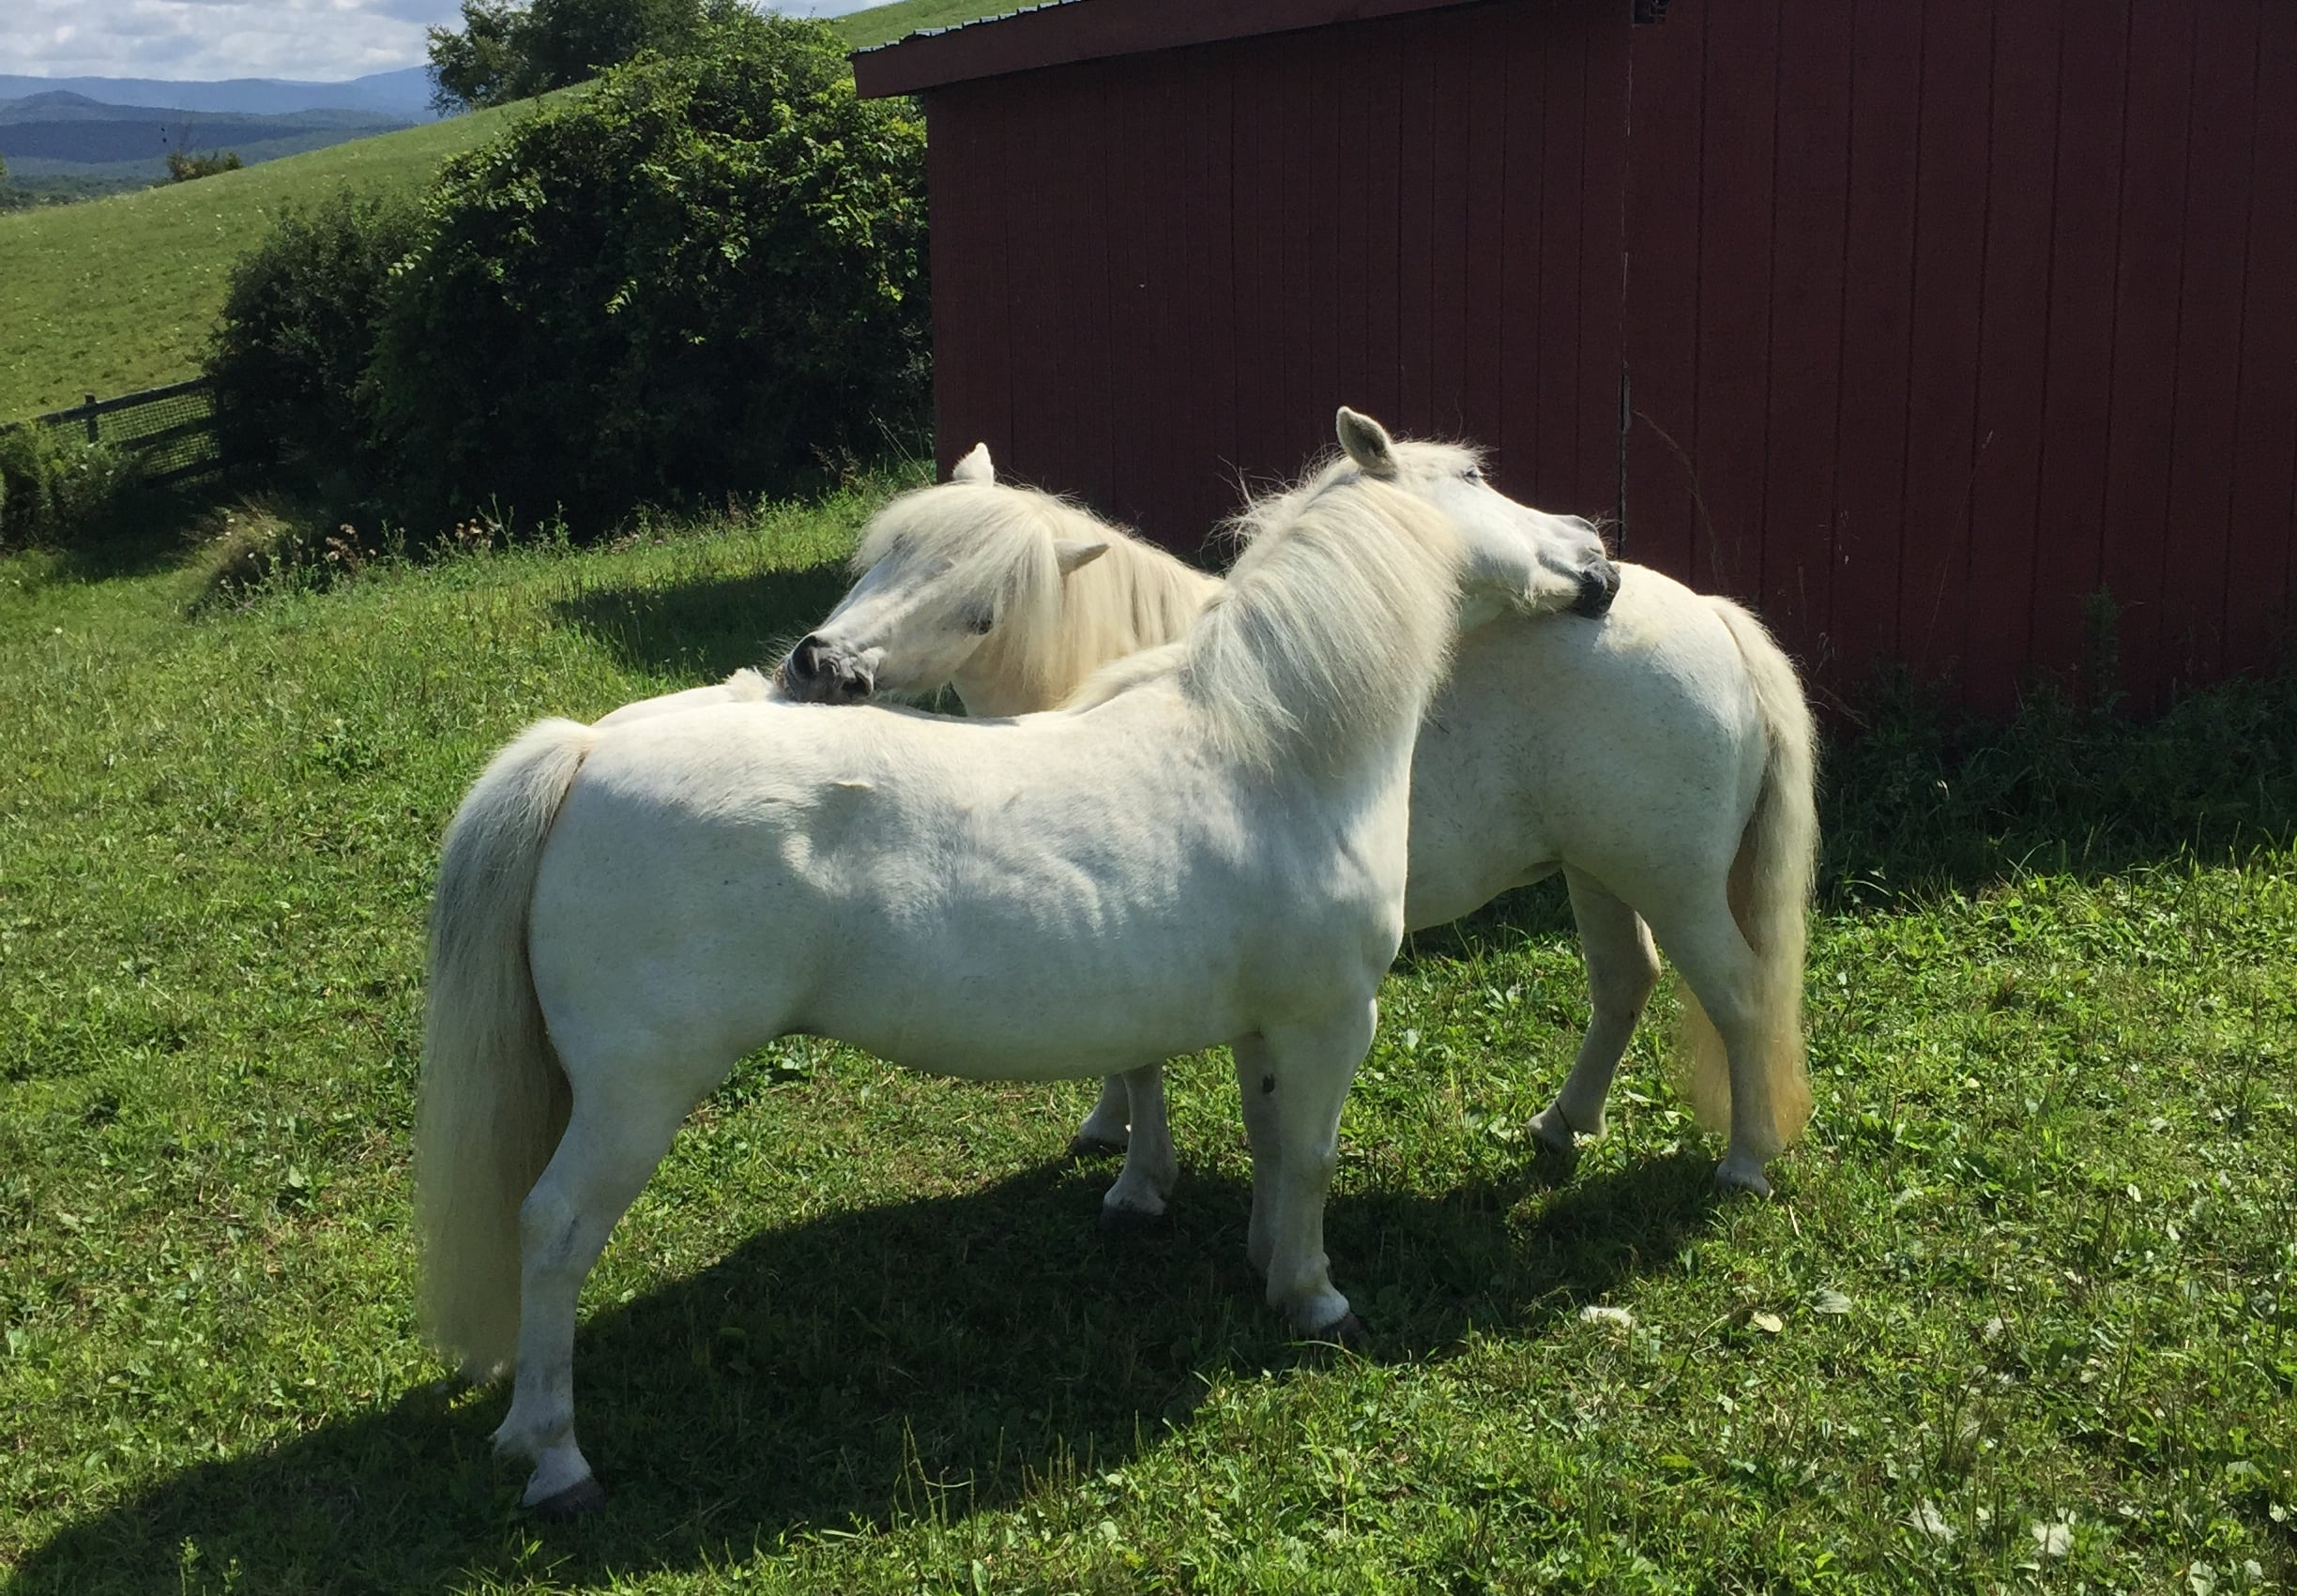 Ponies bitting each other